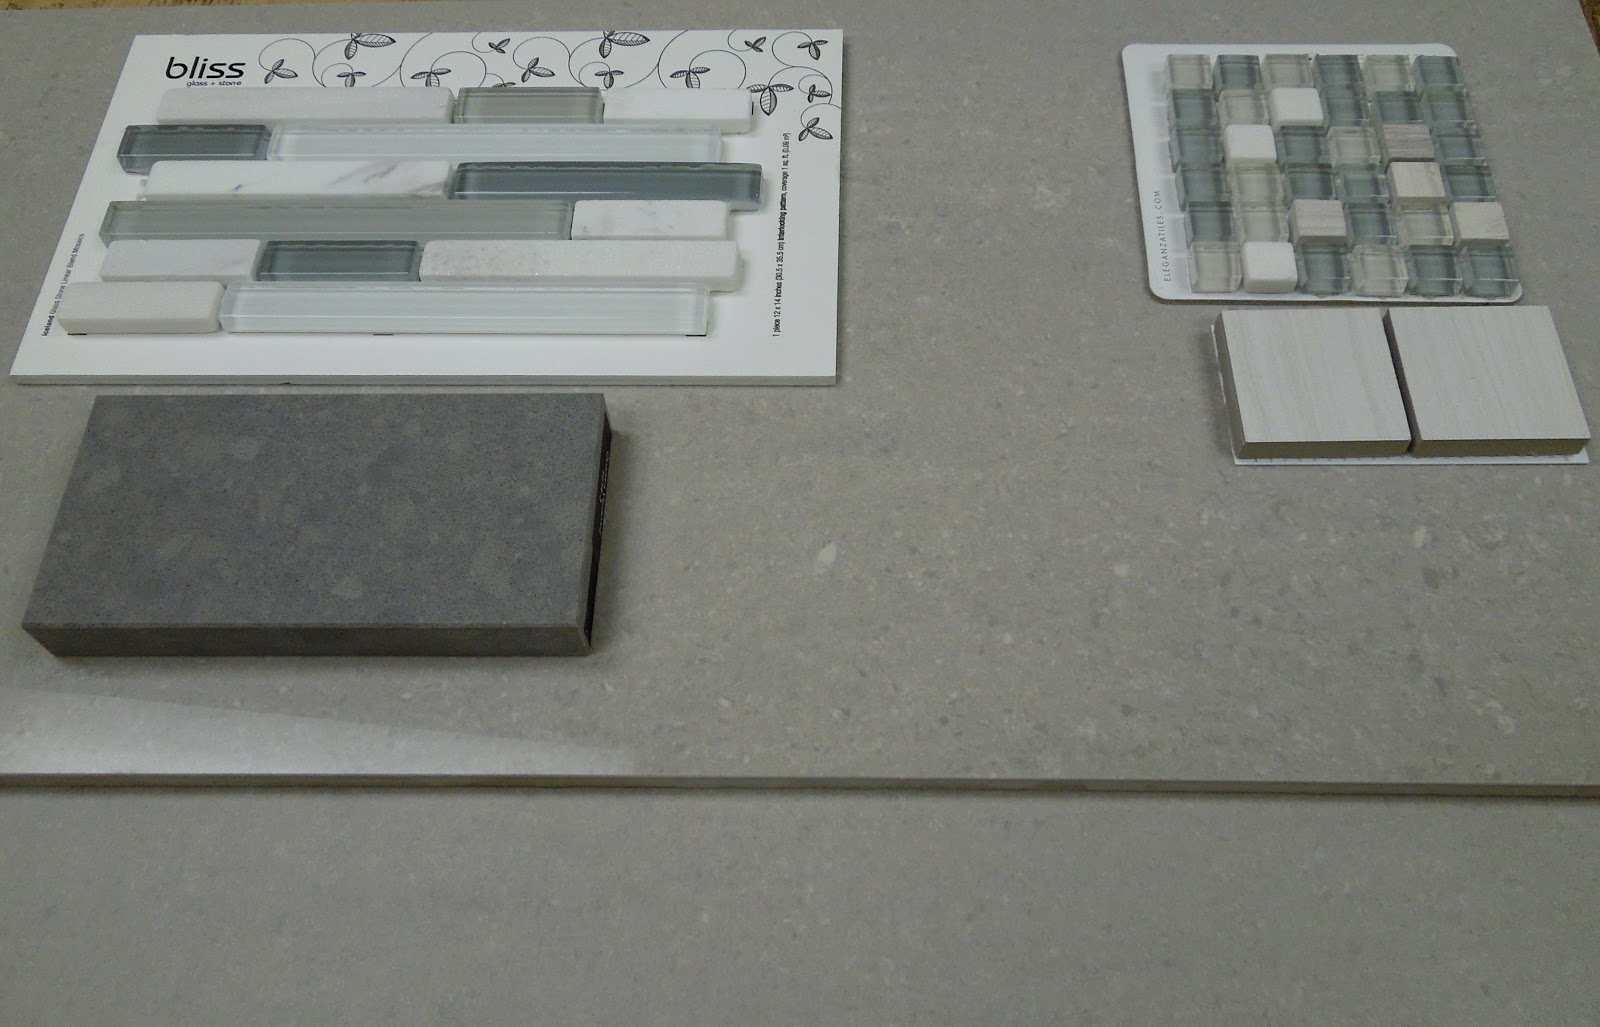 For The Master Bath   Gray Floor Tile With Matching Gray Tile For Shower,  White Cabinetry (not Pictured), Dark Gray Quartz Countertop With Narrow  Glass Tile ...